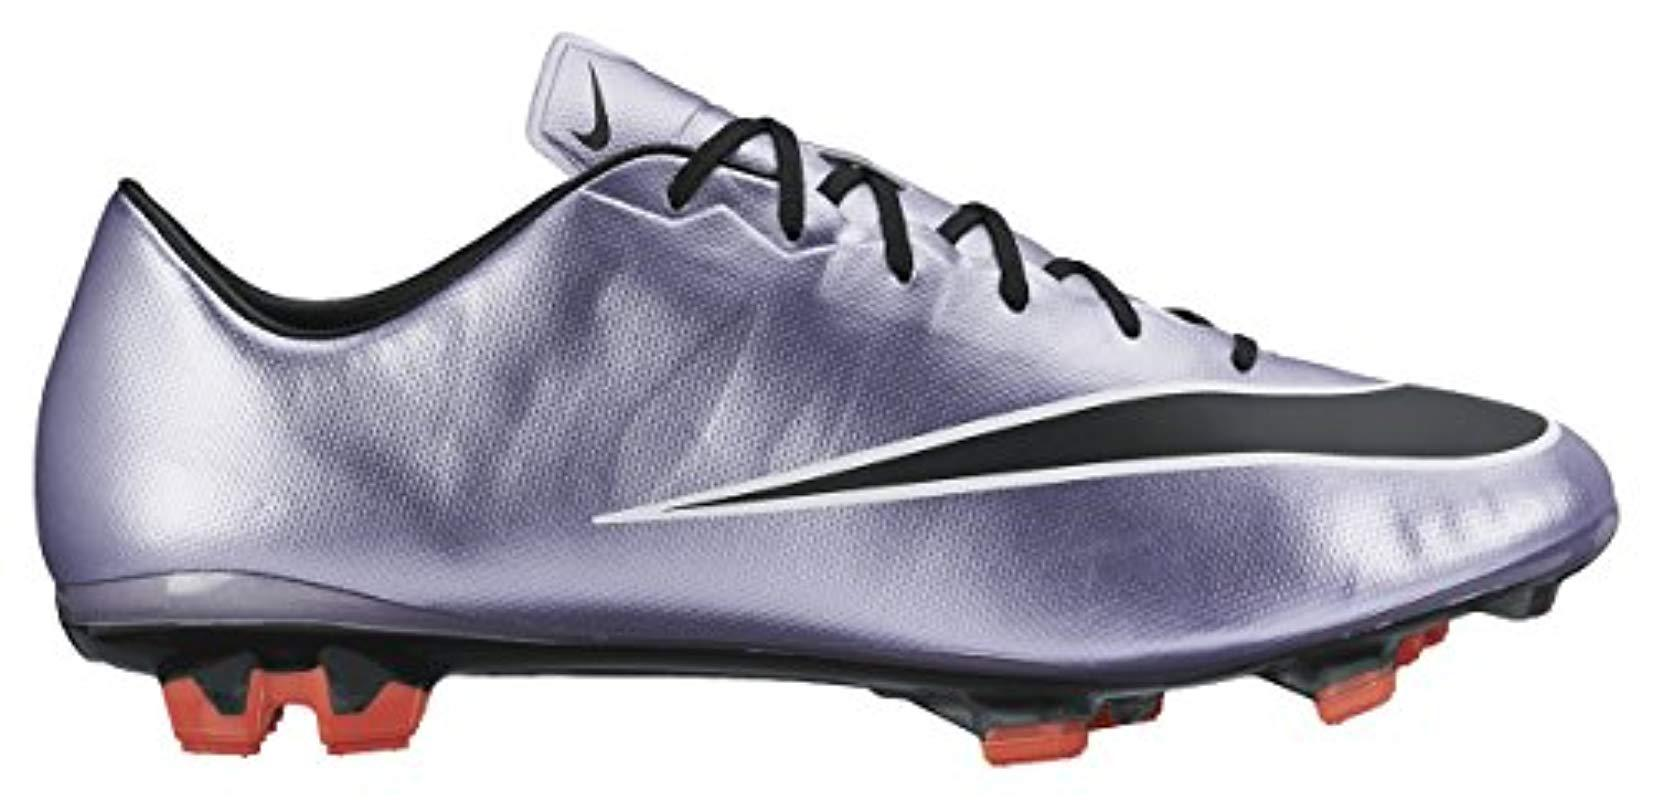 Running Men Fg 's Lyst Mercurial Veloce Shoes Ii For Nike Training dYxpZqznpw